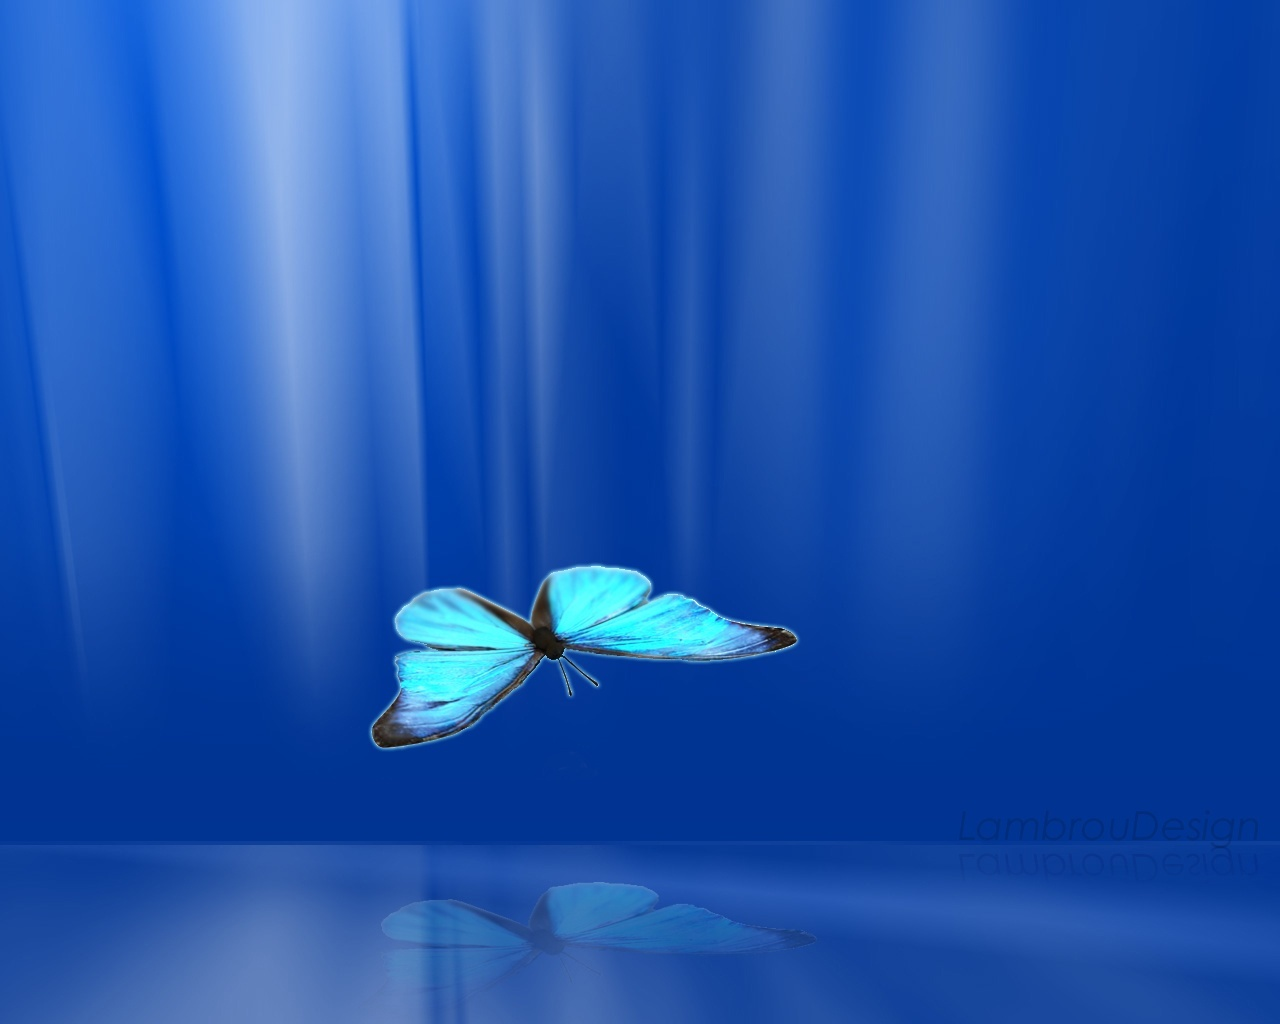 10258 download wallpaper Butterflies, Insects, Background screensavers and pictures for free